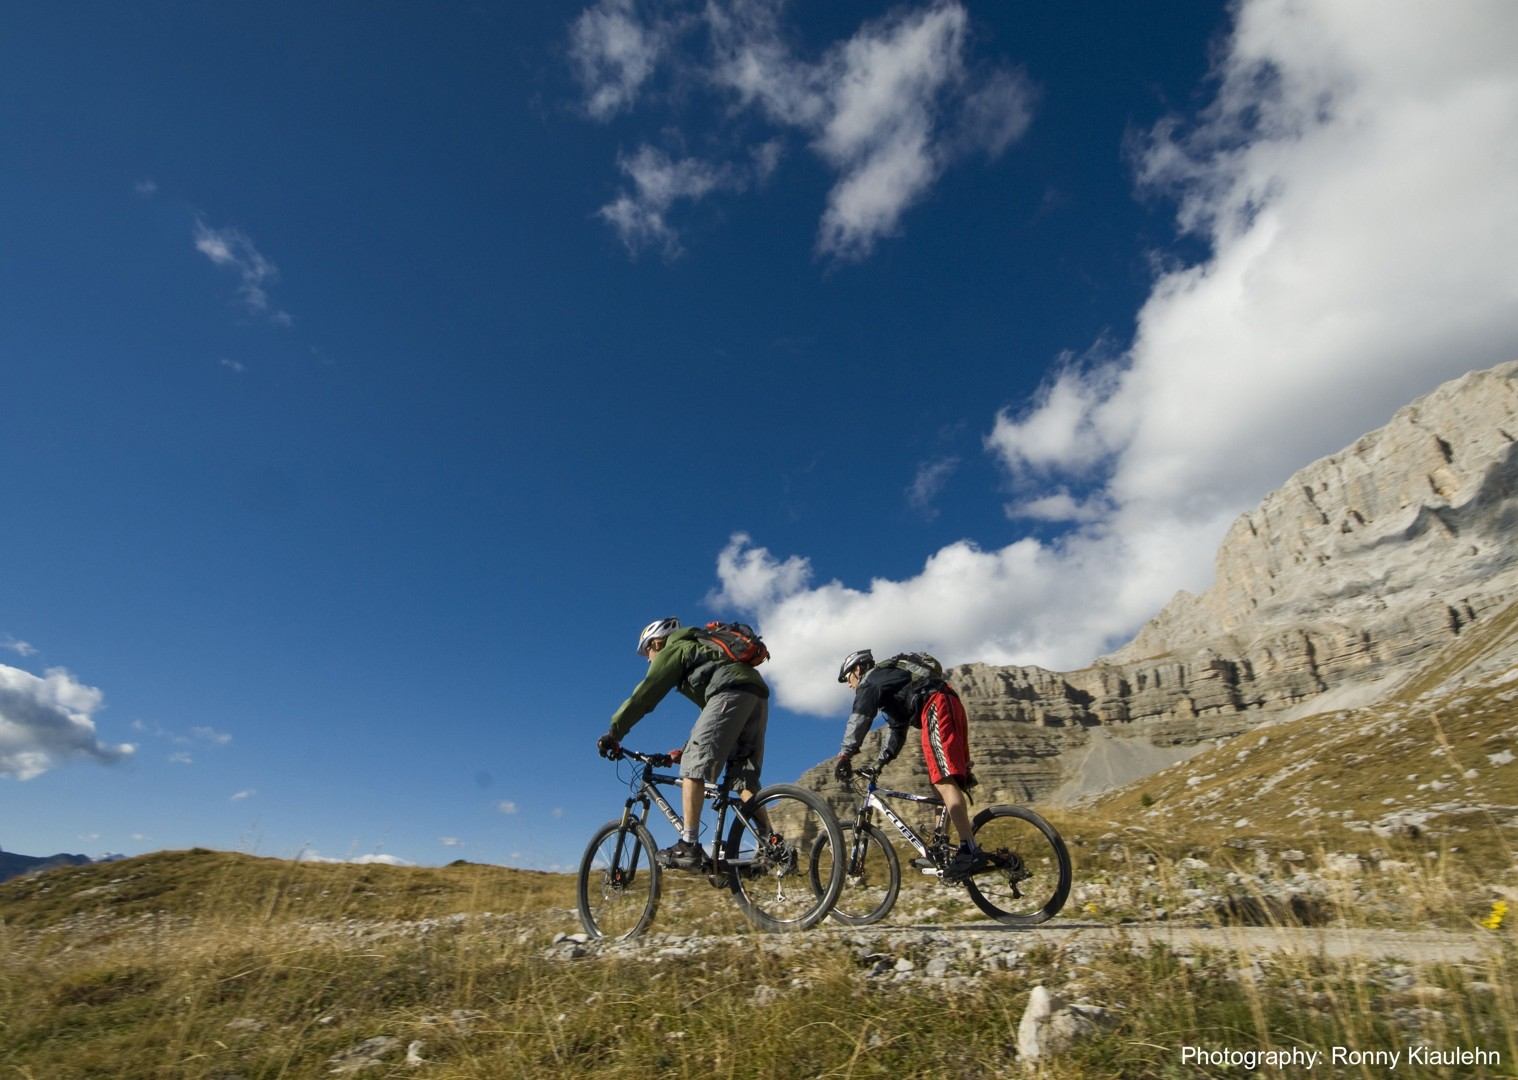 dolomites.jpg - Italy - Dolomites of Brenta - Guided Mountain Bike Holiday - Italia Mountain Biking